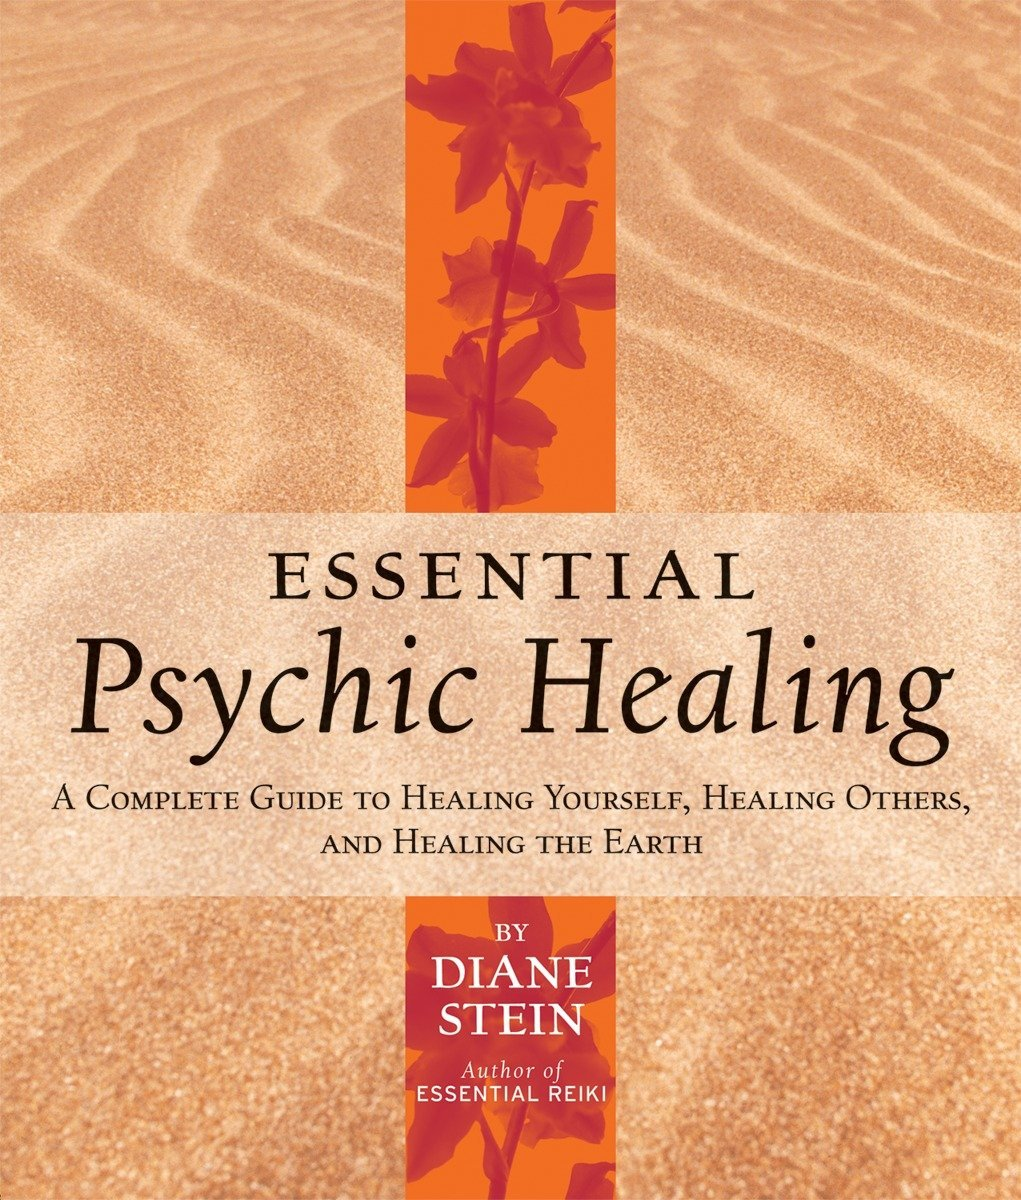 Essential Psychic Healing: A Complete Guide to Healing Yourself, Healing Others, and Healing the Earth PDF